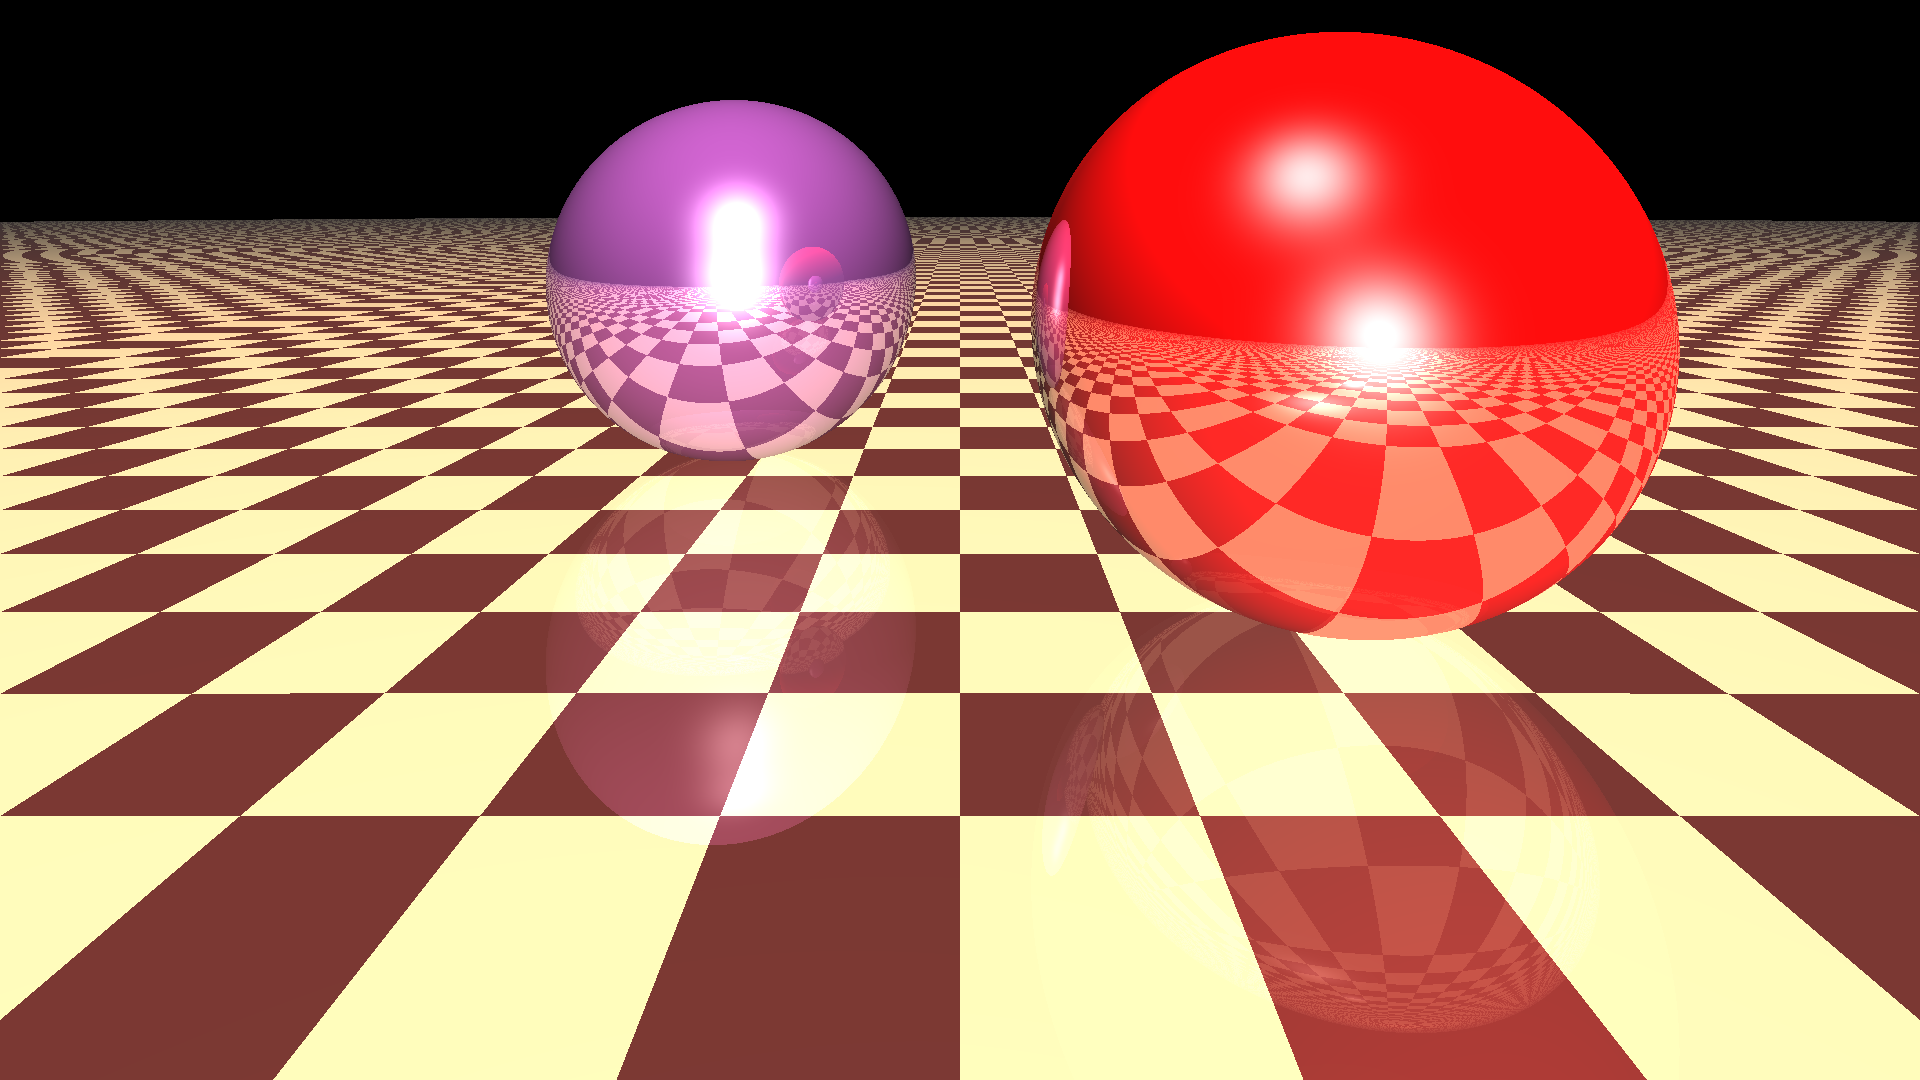 Render of two balls